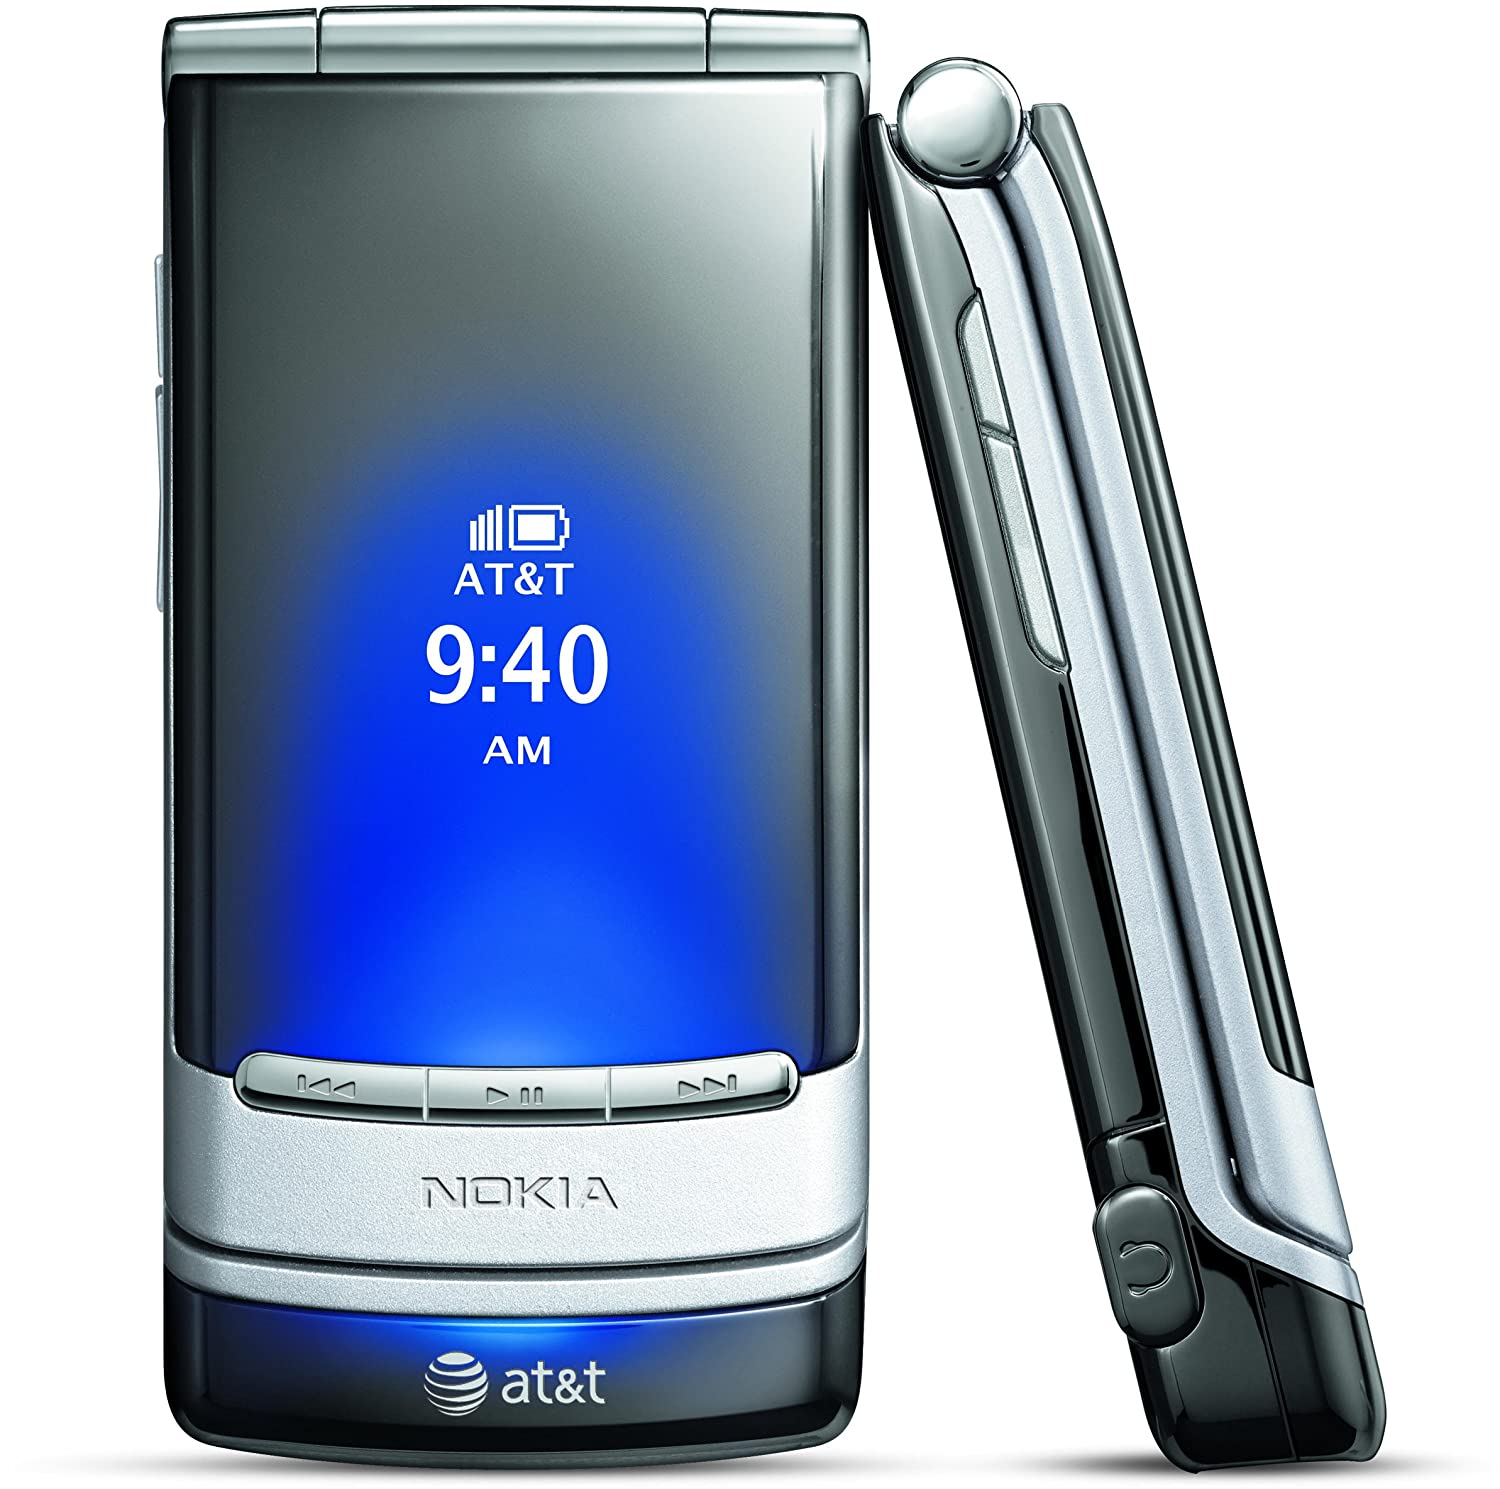 Nokia-Mural-6750-Unlocked-GSM-Flip-Phone-with-Second-External-OLED-Display-2MP-Camera-Video-Bluetooth-MP3-MP4-Player-and-microSD-Slot-Silver